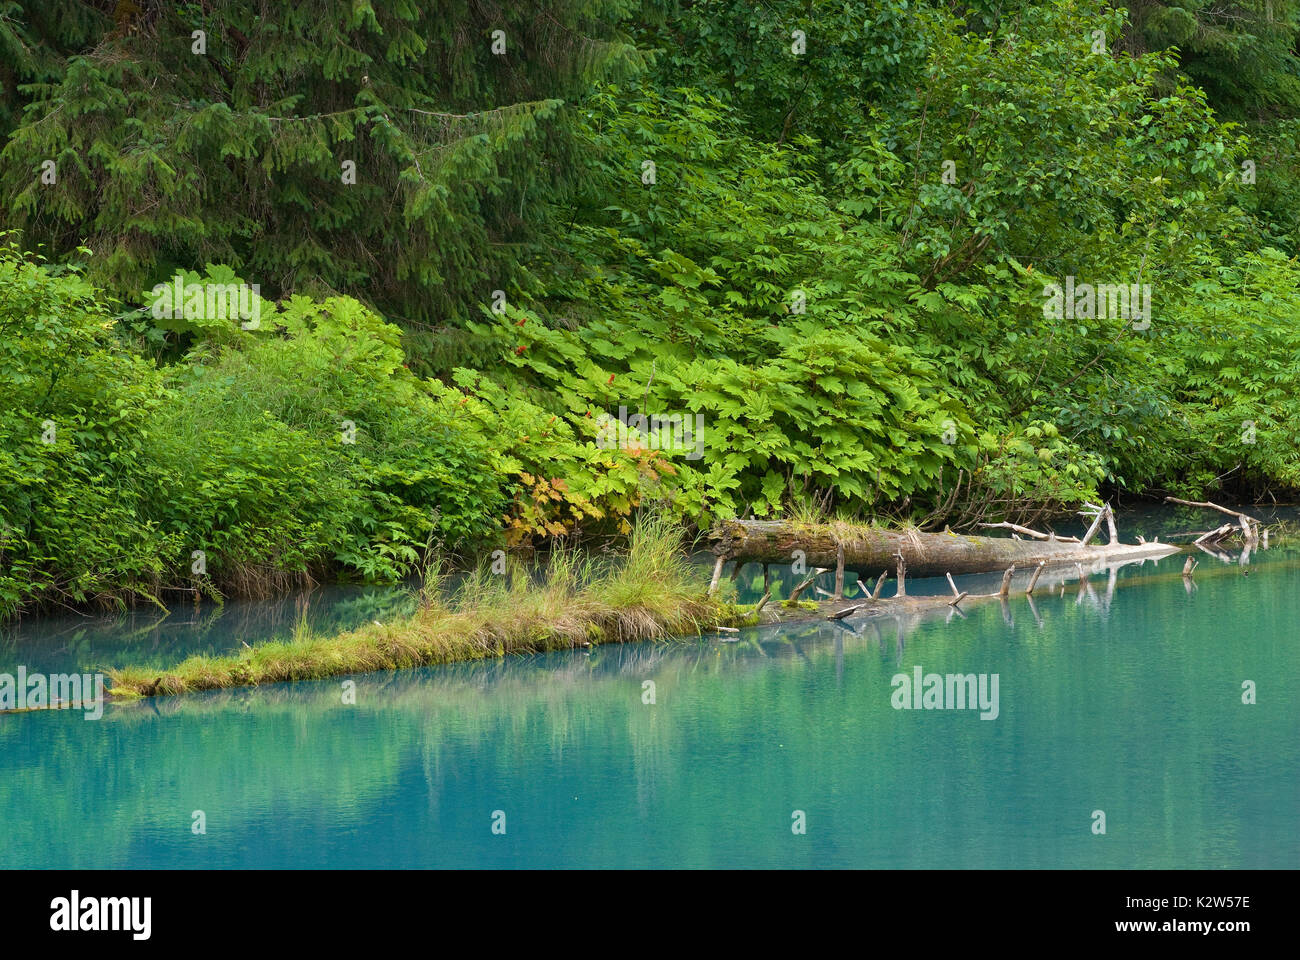 Floating trunks in the Blue Lagoon at Fish Creek, Tongass National Forest, Hyder, Alaska, USA - Stock Image